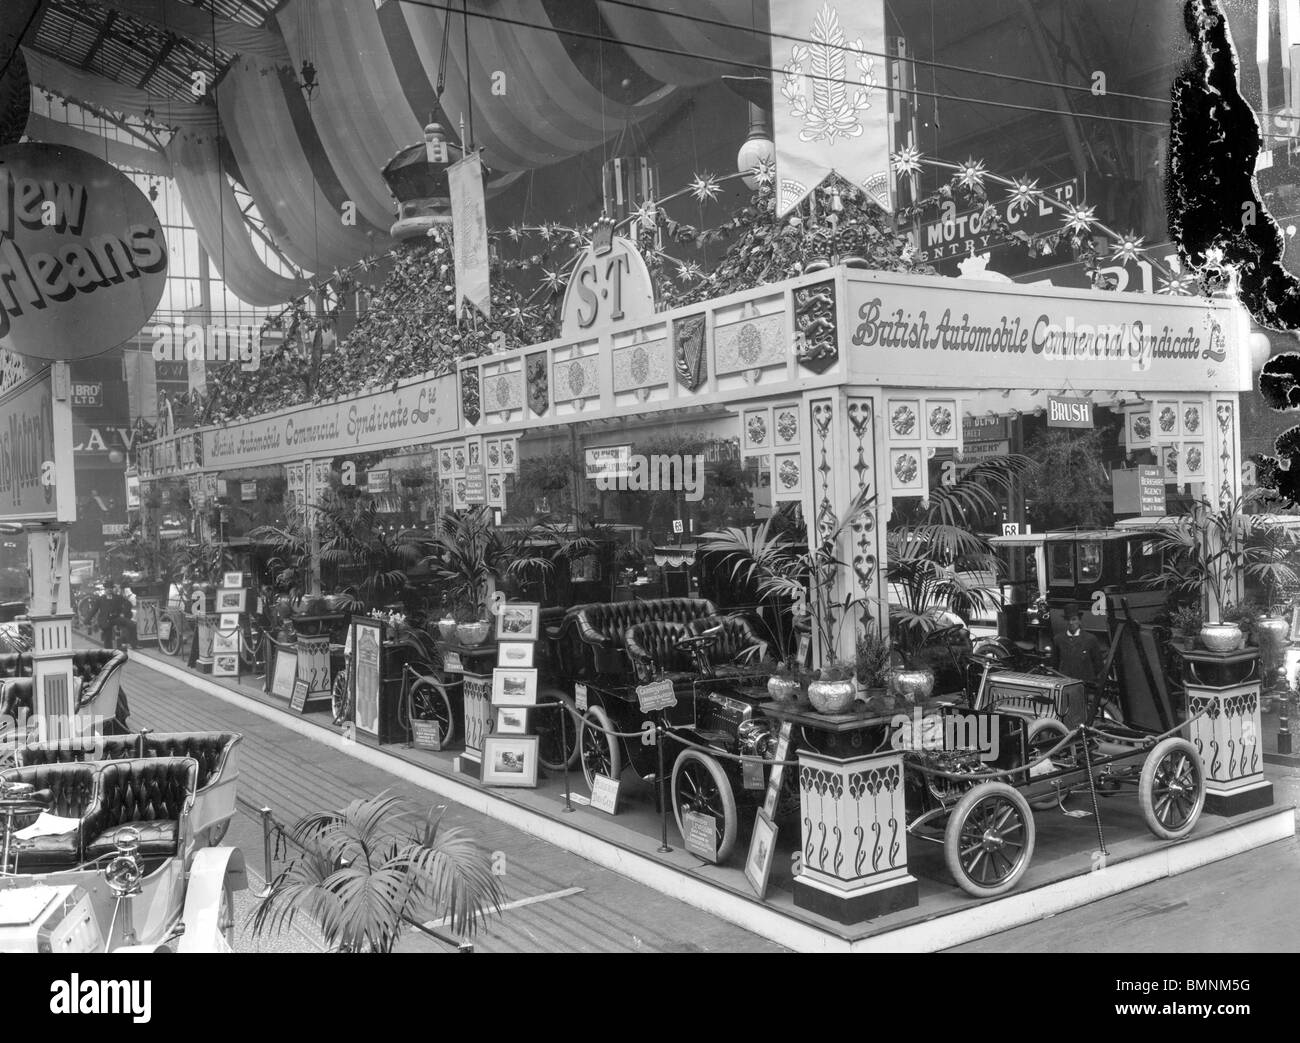 1902 Motorshow. The British Automobile Commercial Syndicate stand. - Stock Image